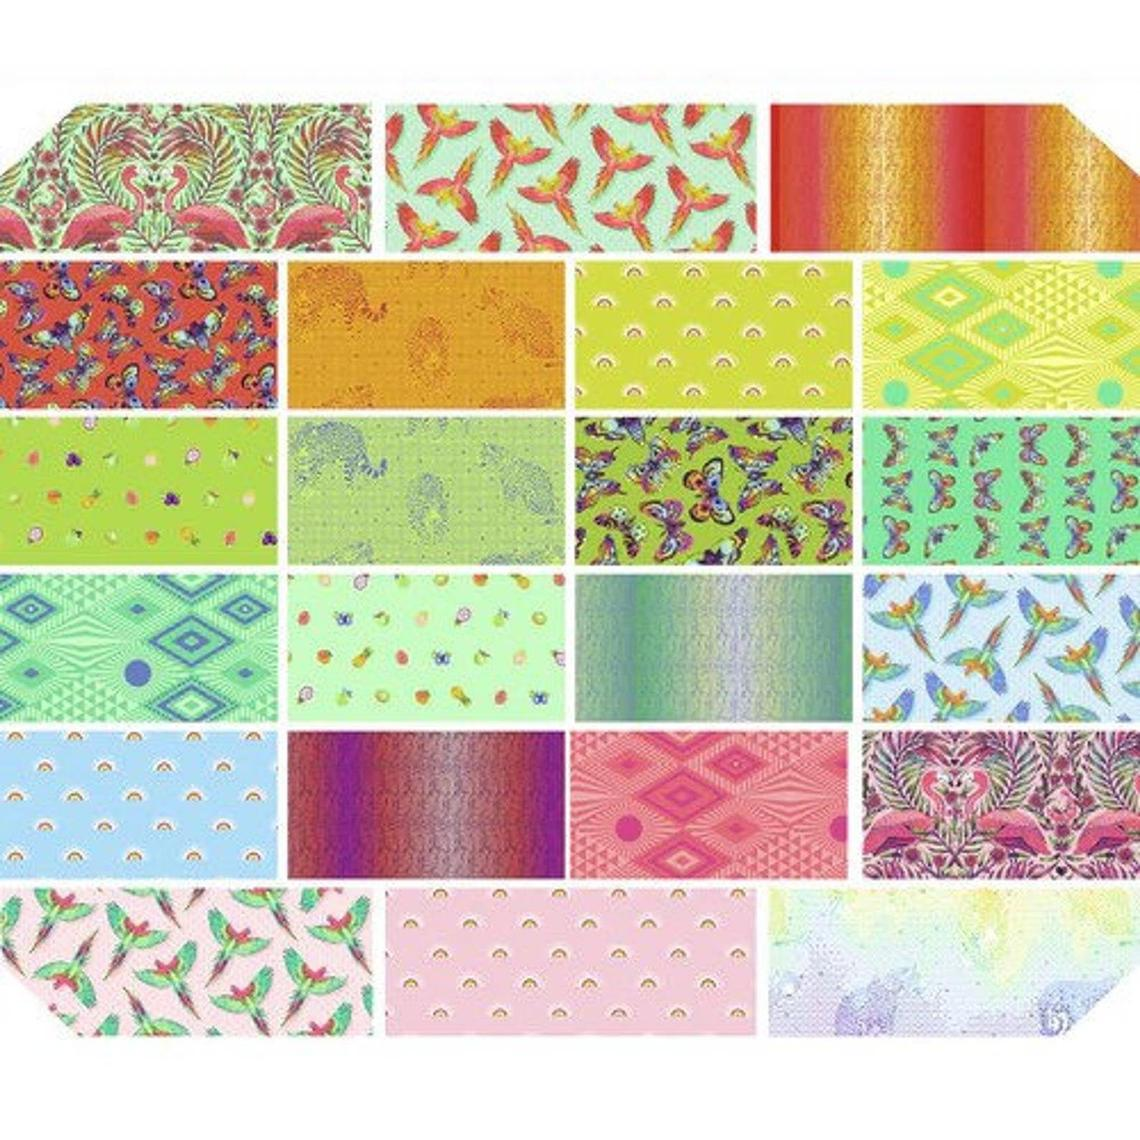 This HALF YARD bundle contains 22 quilting cotton prints from Daydreamer by Tula Pink for Freespirit Fabrics  Manufacturer: FreeSpirit Fabrics Designer: Tula Pink Collection: Daydreamer Material: 100% Cotton  Weight: Quilting